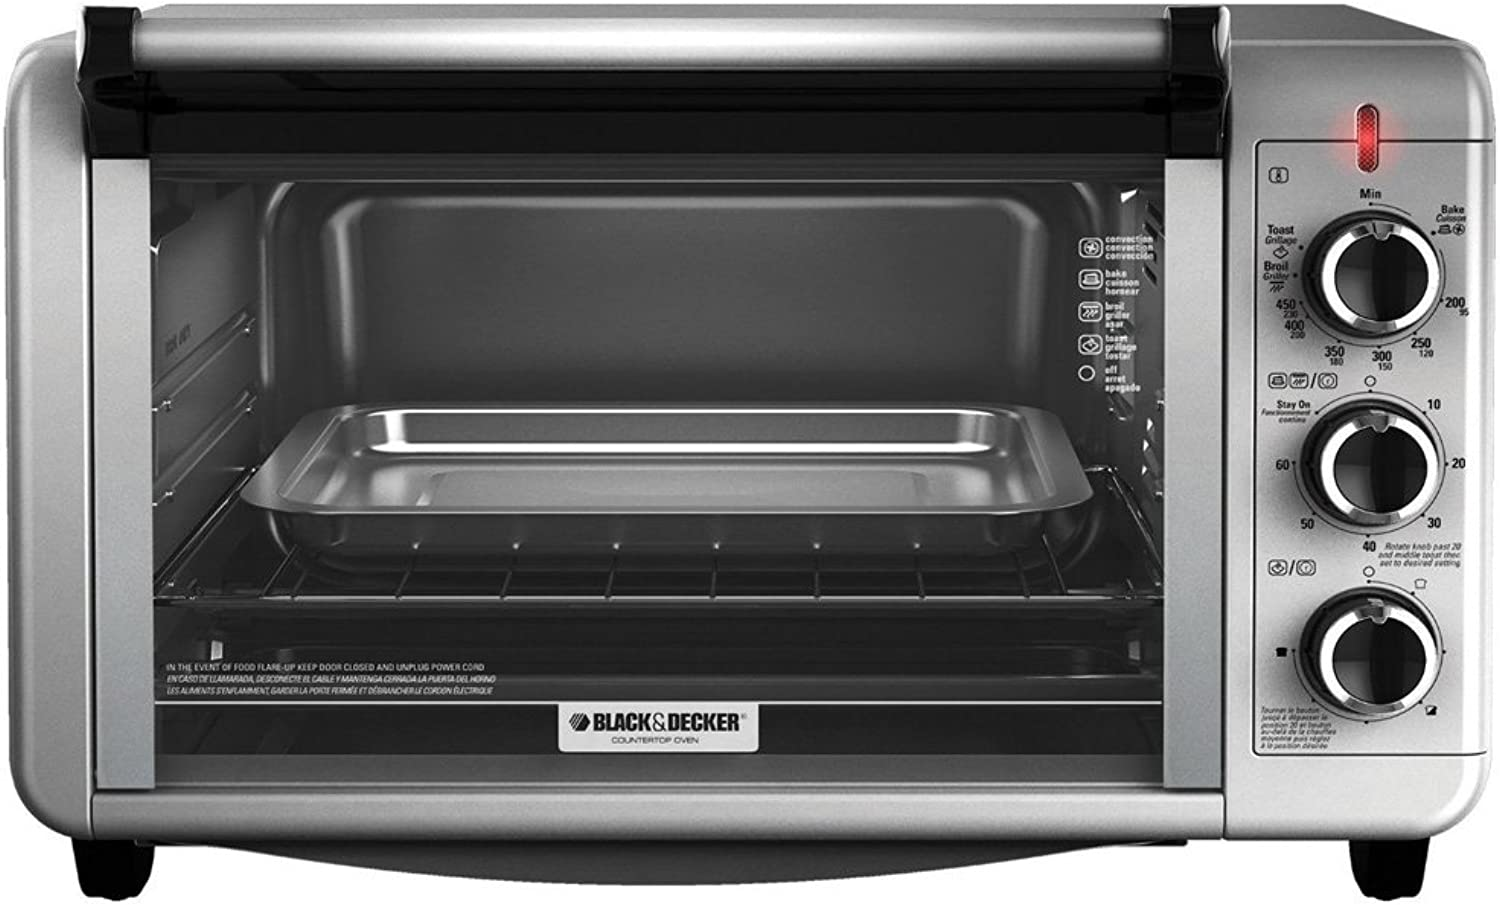 BLACK+DECKER TO3210SSD-CL 6-Slice Toaster Oven 220-240 Volts 50 60Hz Export Only Medium Silver